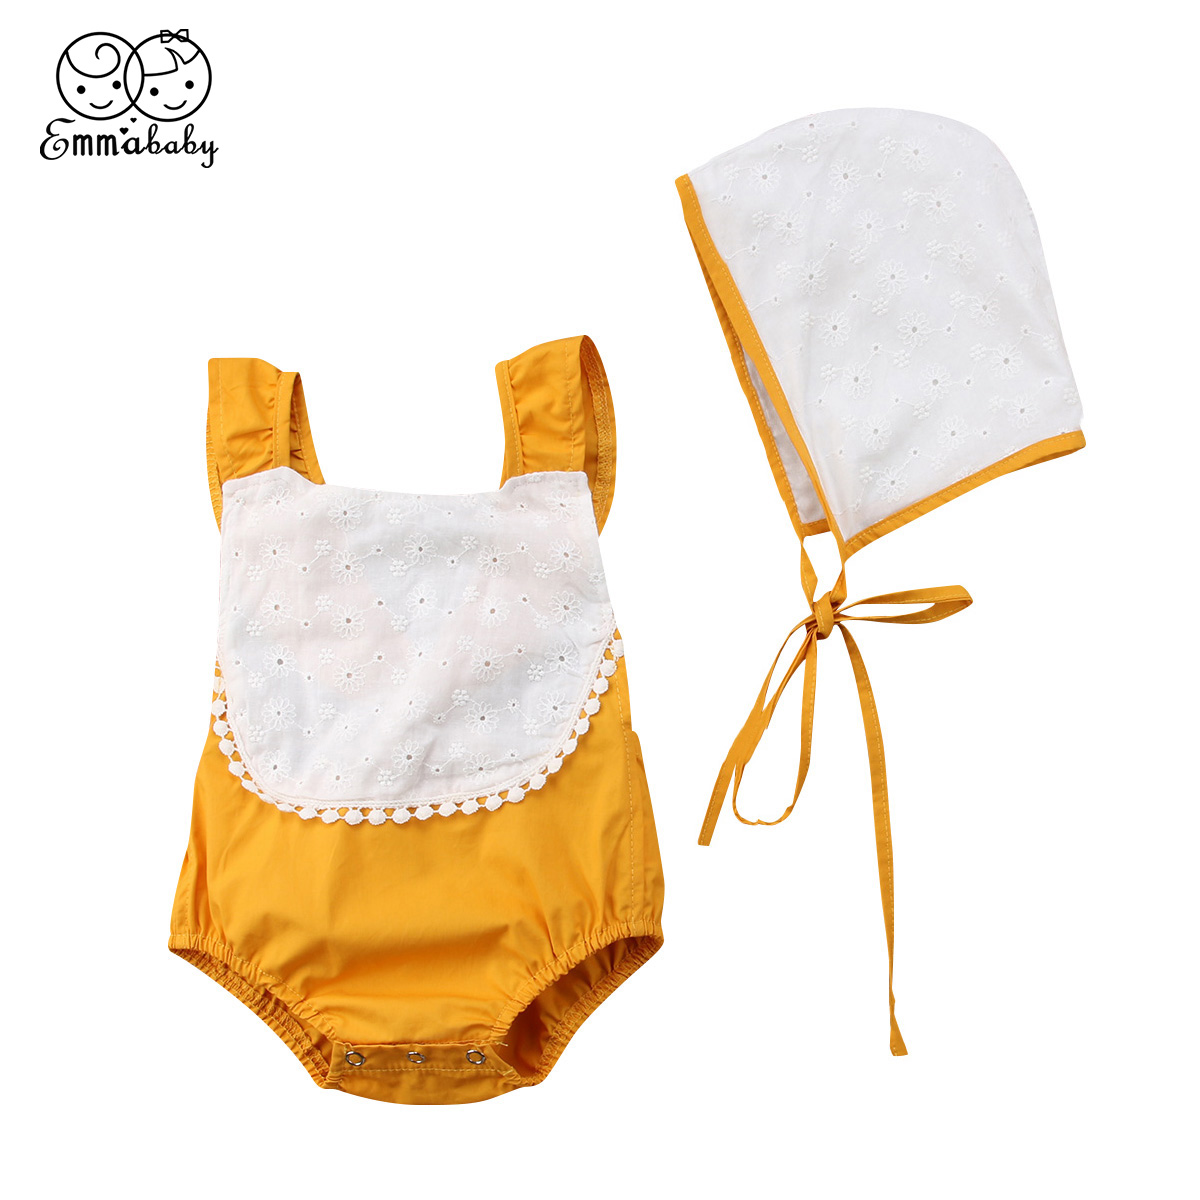 2018 new sweet Newborn Baby Girls Clothes set Summer lovely lace up backless Jumpsuit Bodysuit +Hat cute kid cotton Outfit Set